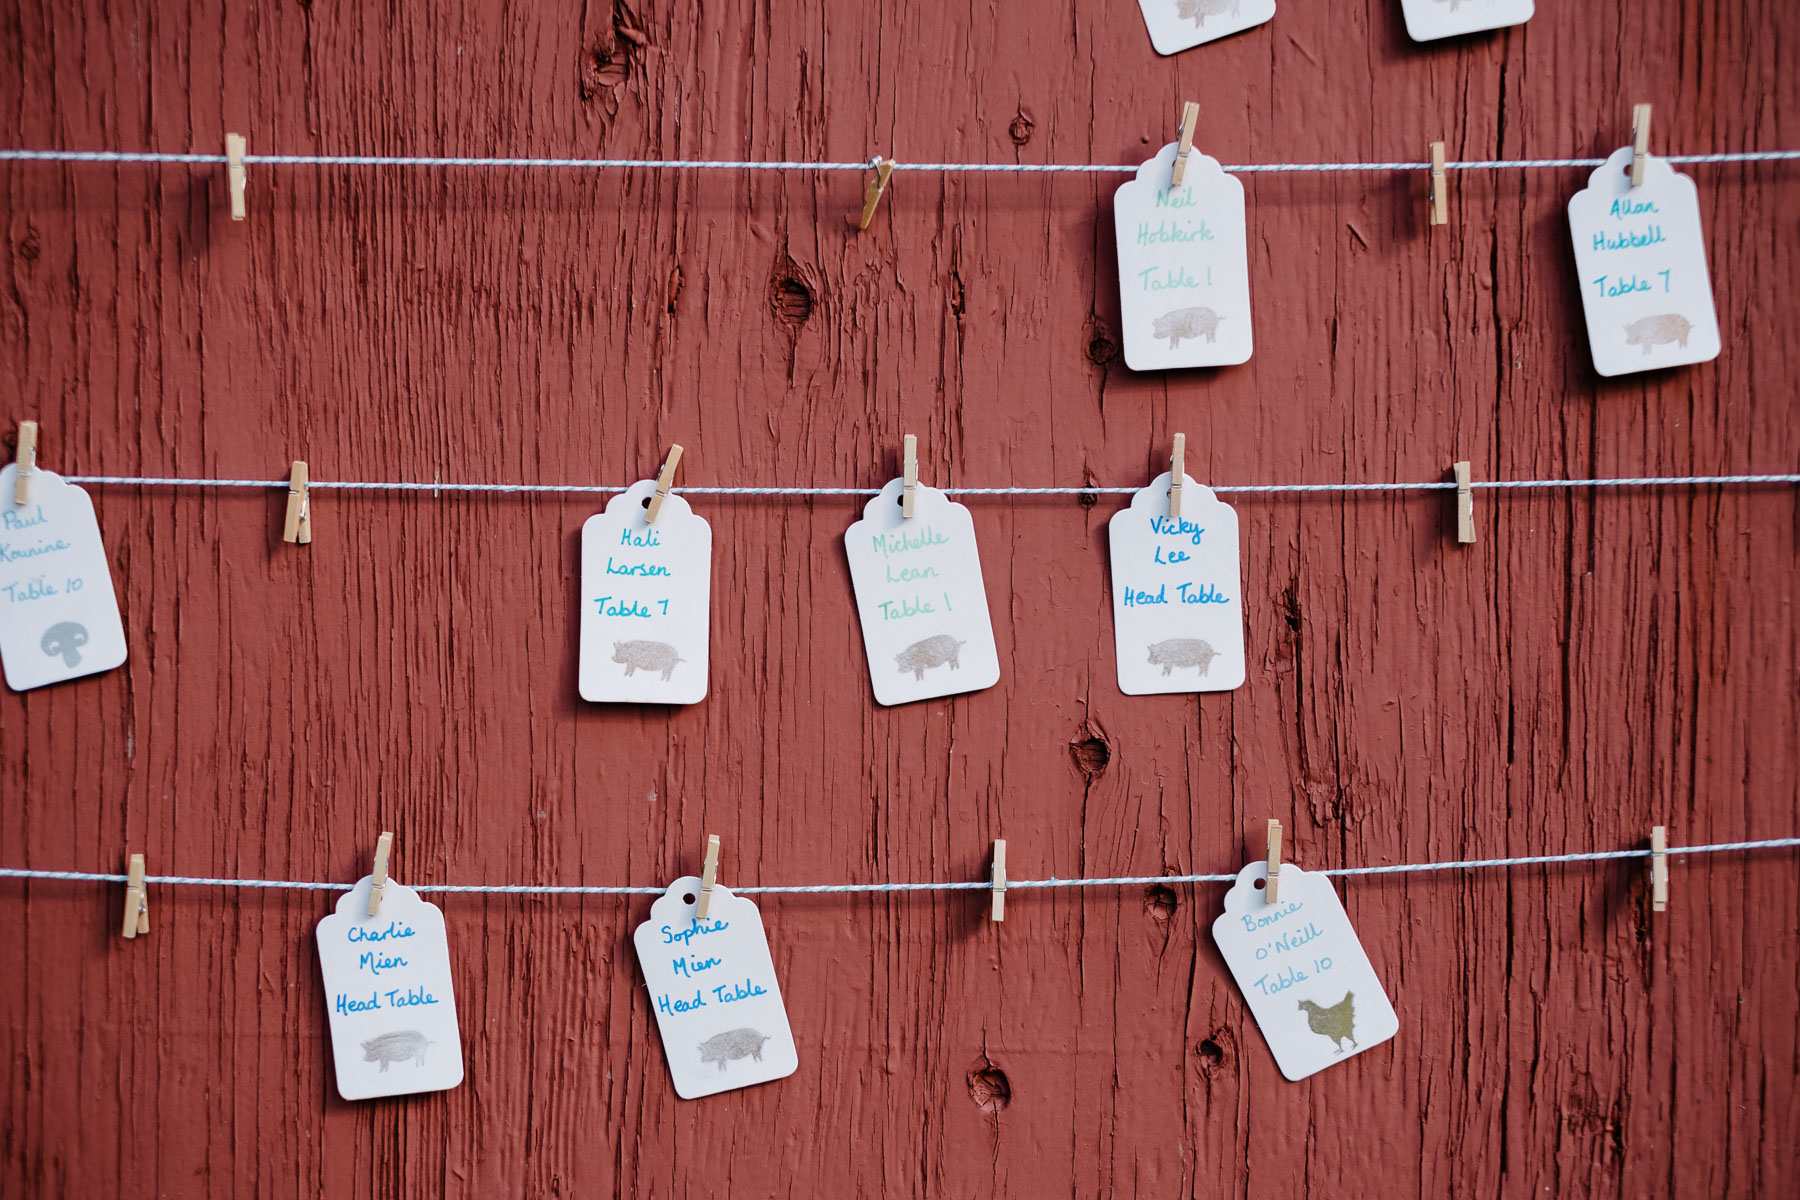 Seating assignment tags hanging on strings and clothespins at rustic farm wedding.